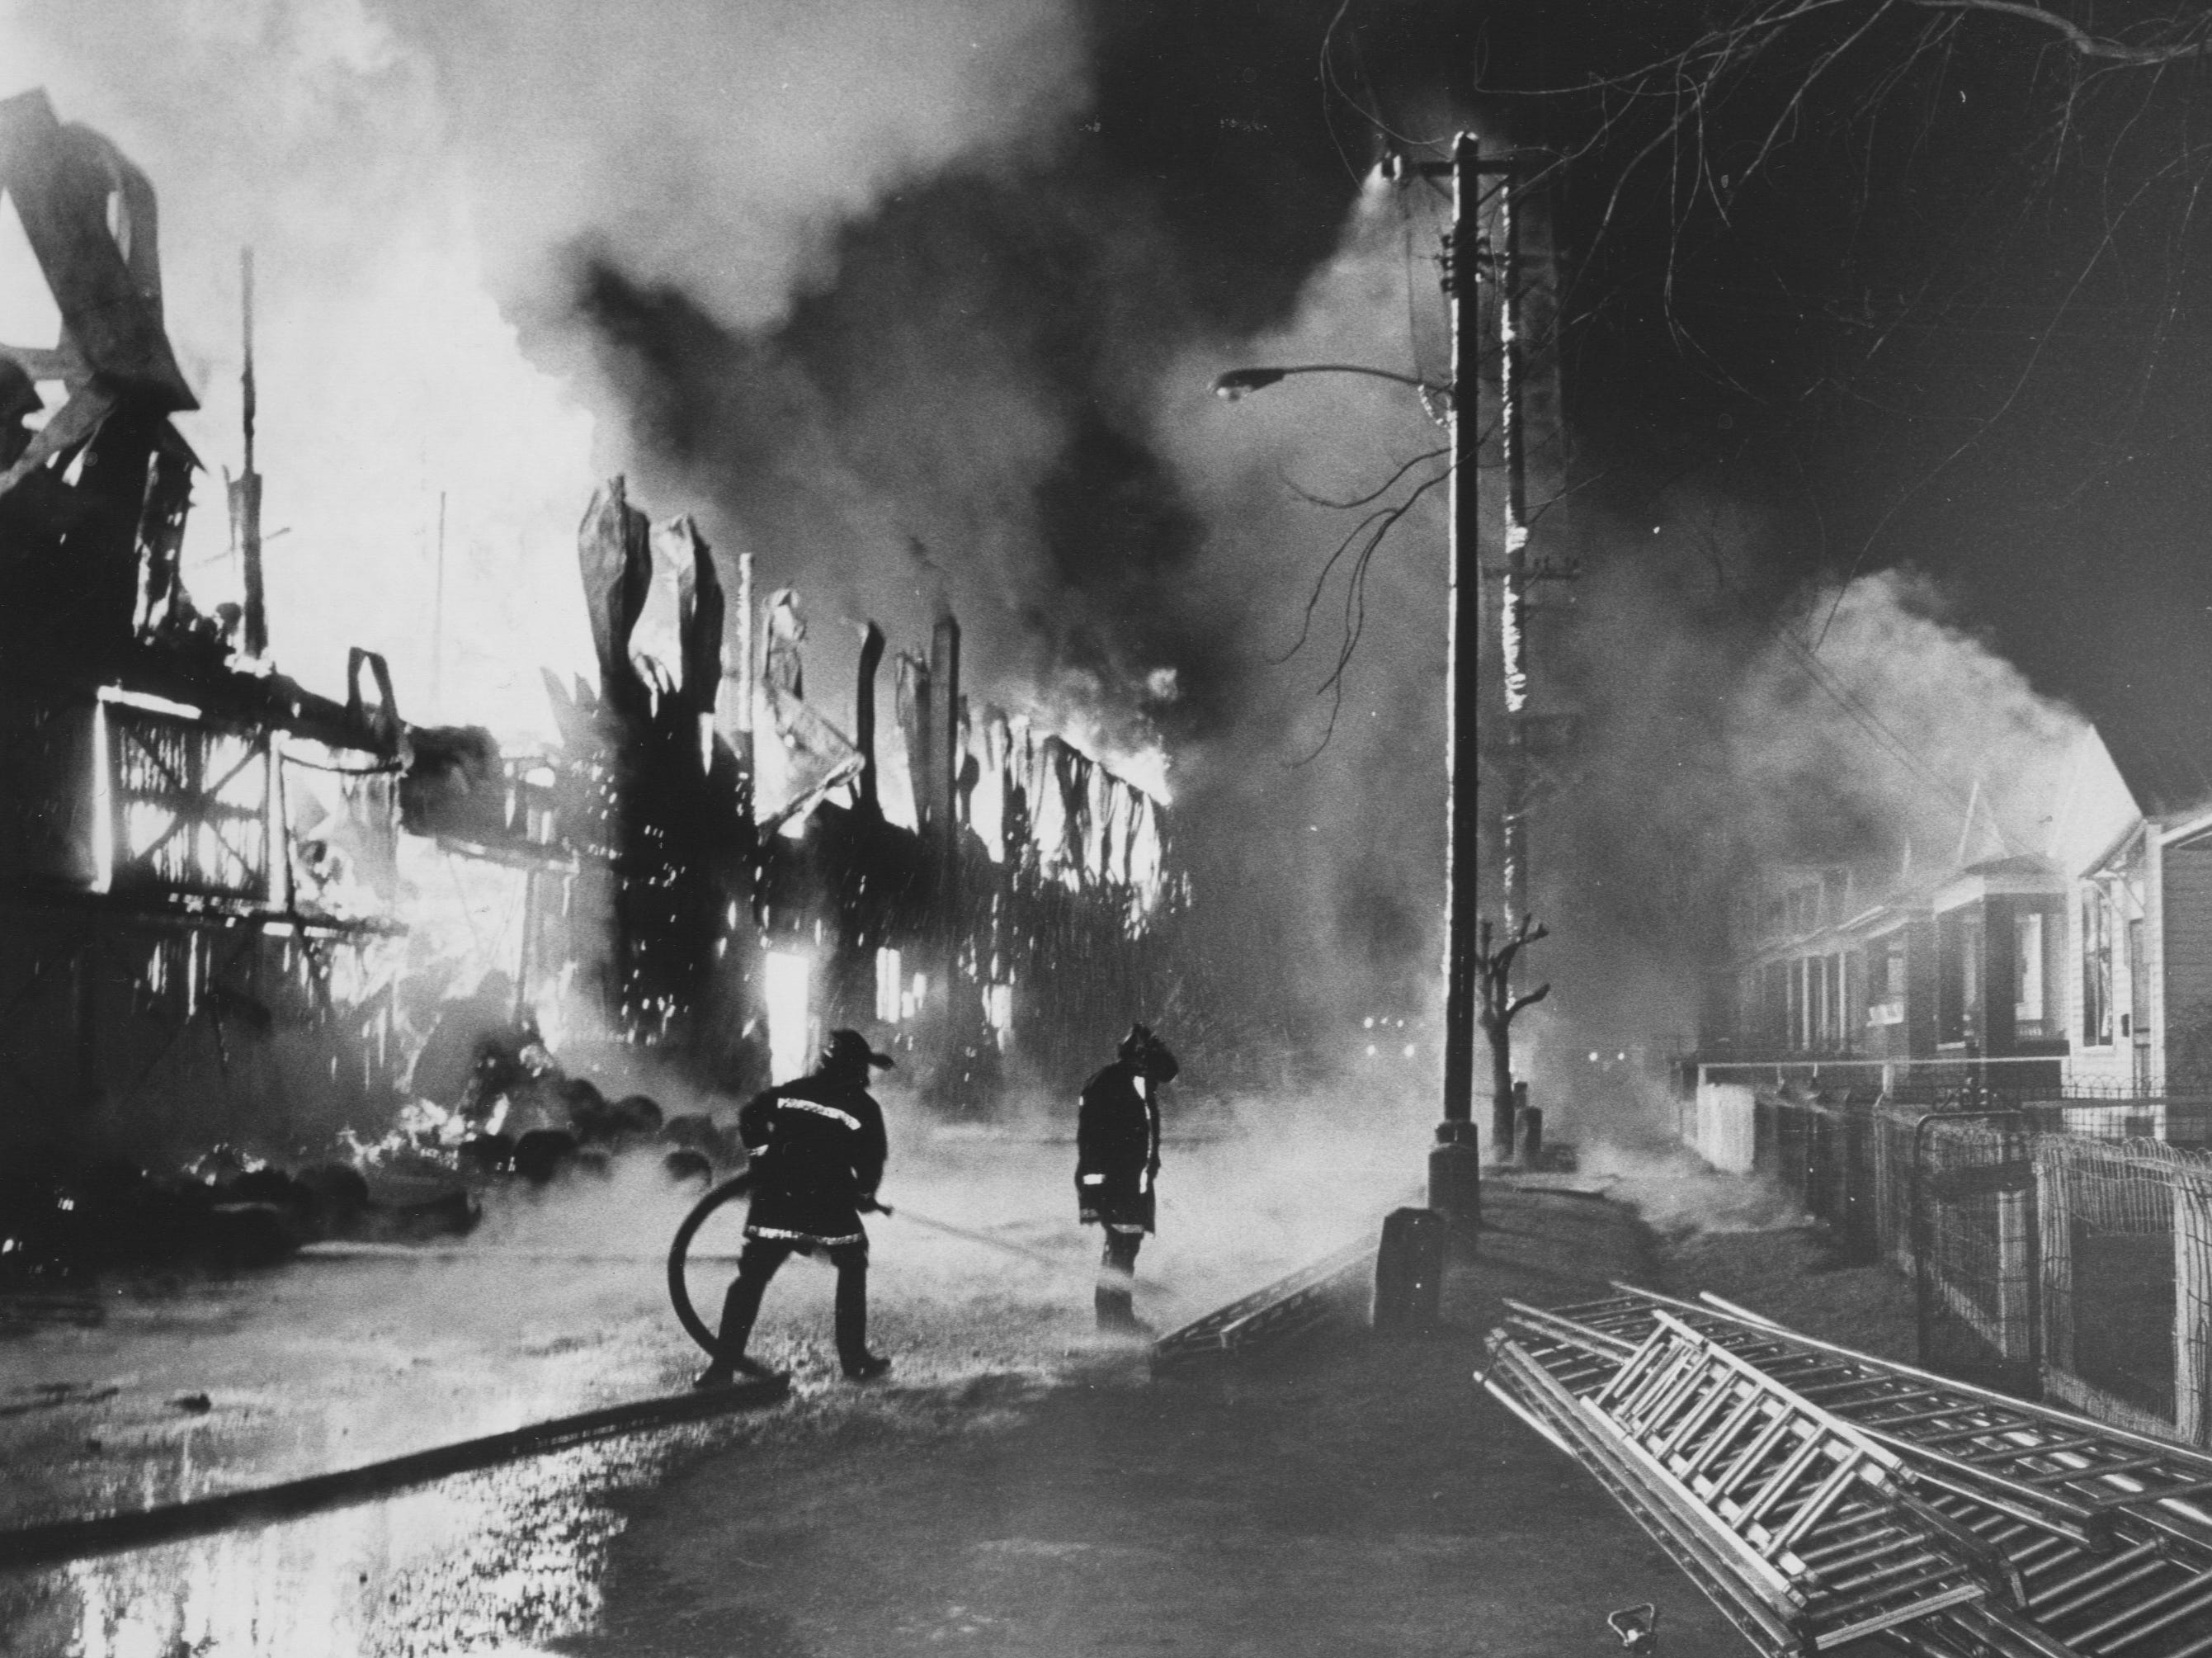 Four-alarm fire at the Louisville Sash & Door Co. 